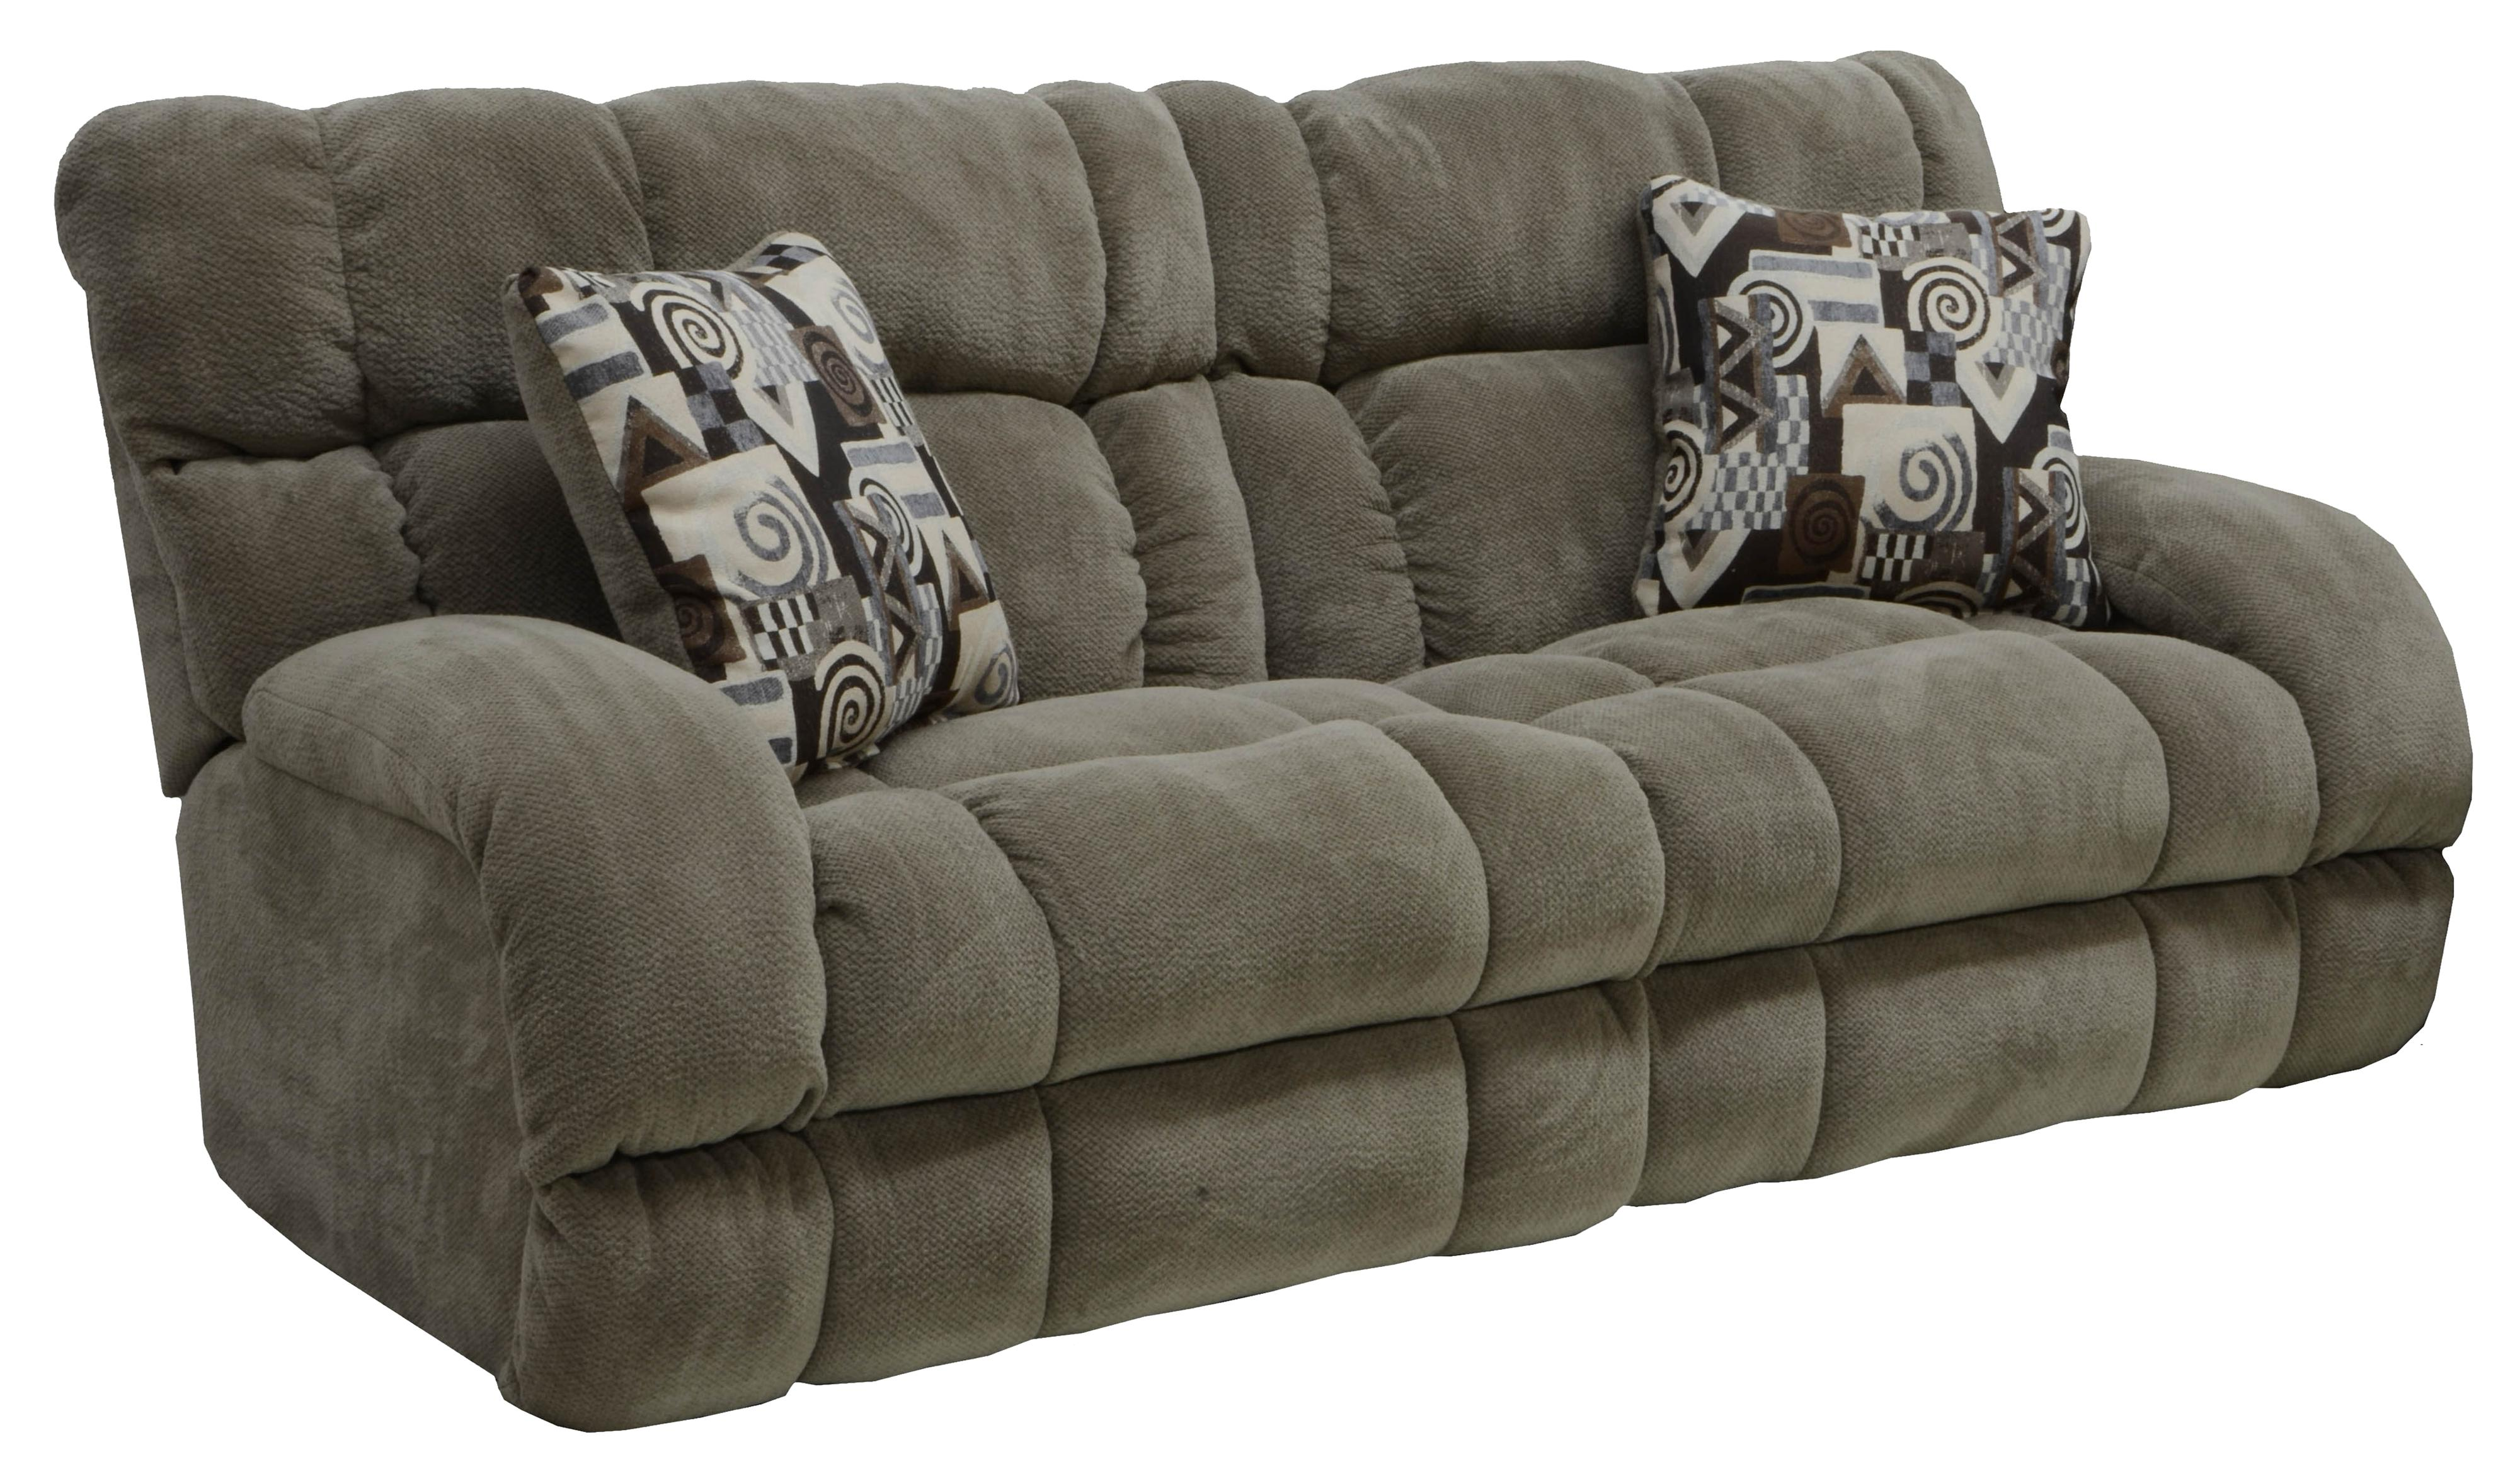 Power lay flat reclining sofa with wide seats by catnapper wolf and gardiner wolf furniture Power loveseat recliner